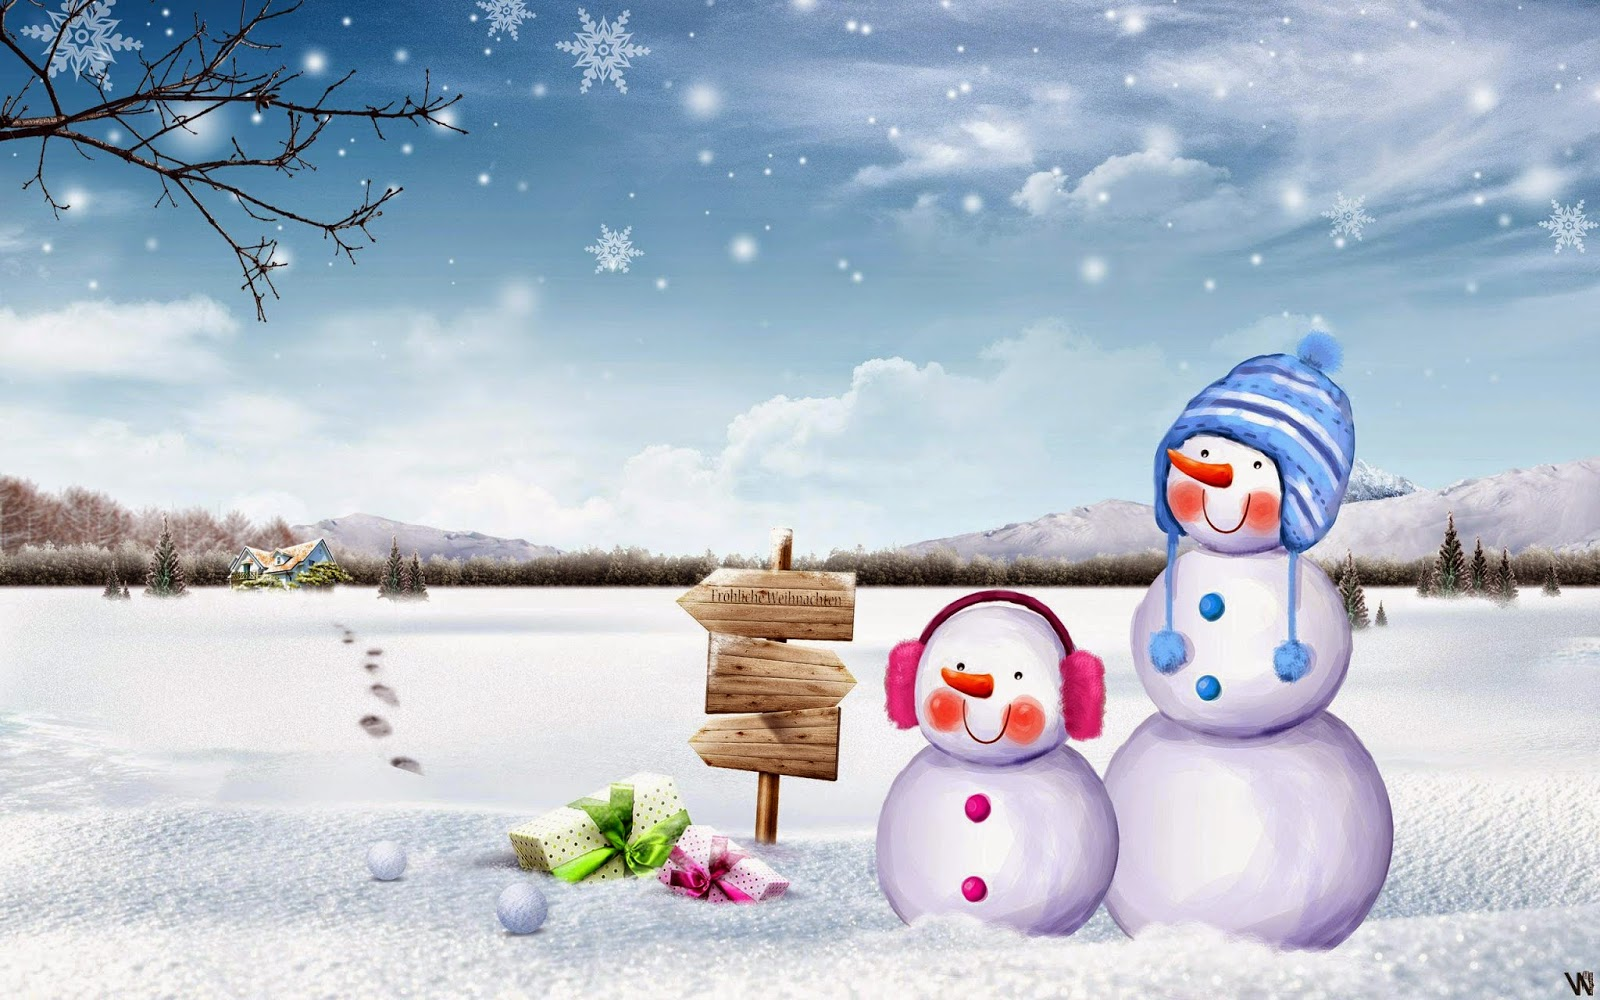 Cute-Snowman-with-little-snowman-in-ice-north-pole-village-HD-wallpaper-free-download.jpg